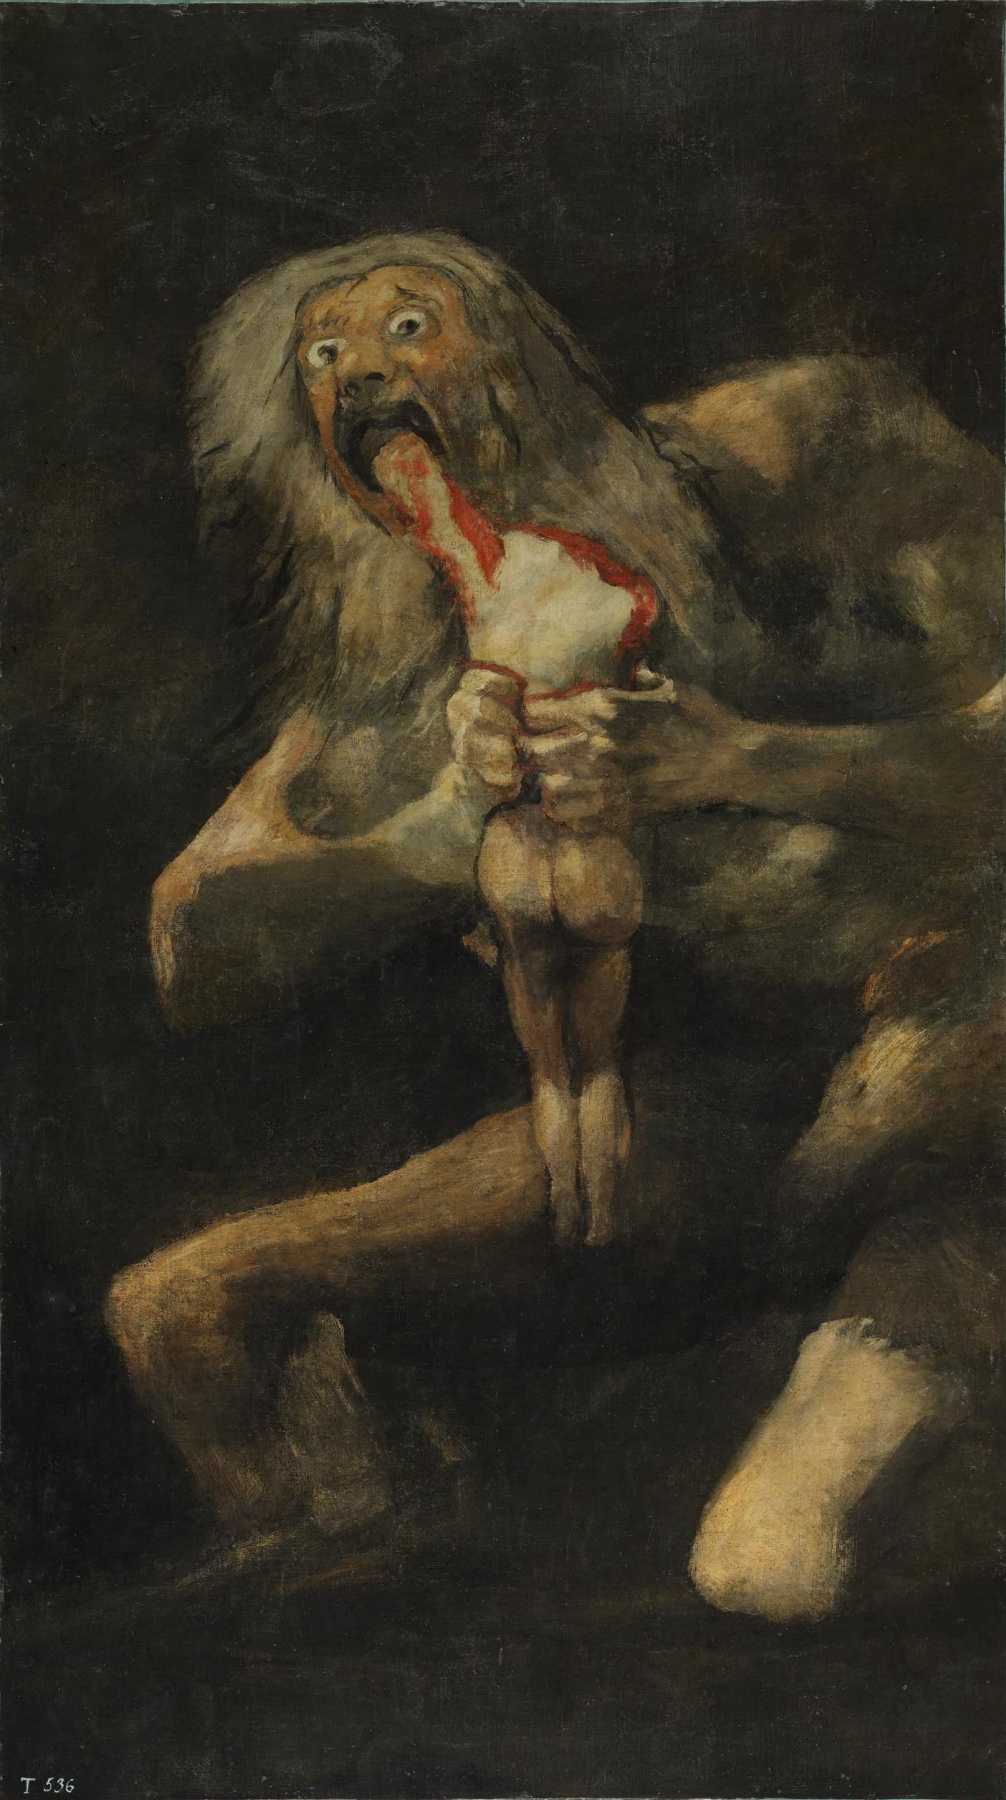 Francisco Goya. A series of gloomy paintings. Saturn devouring his children